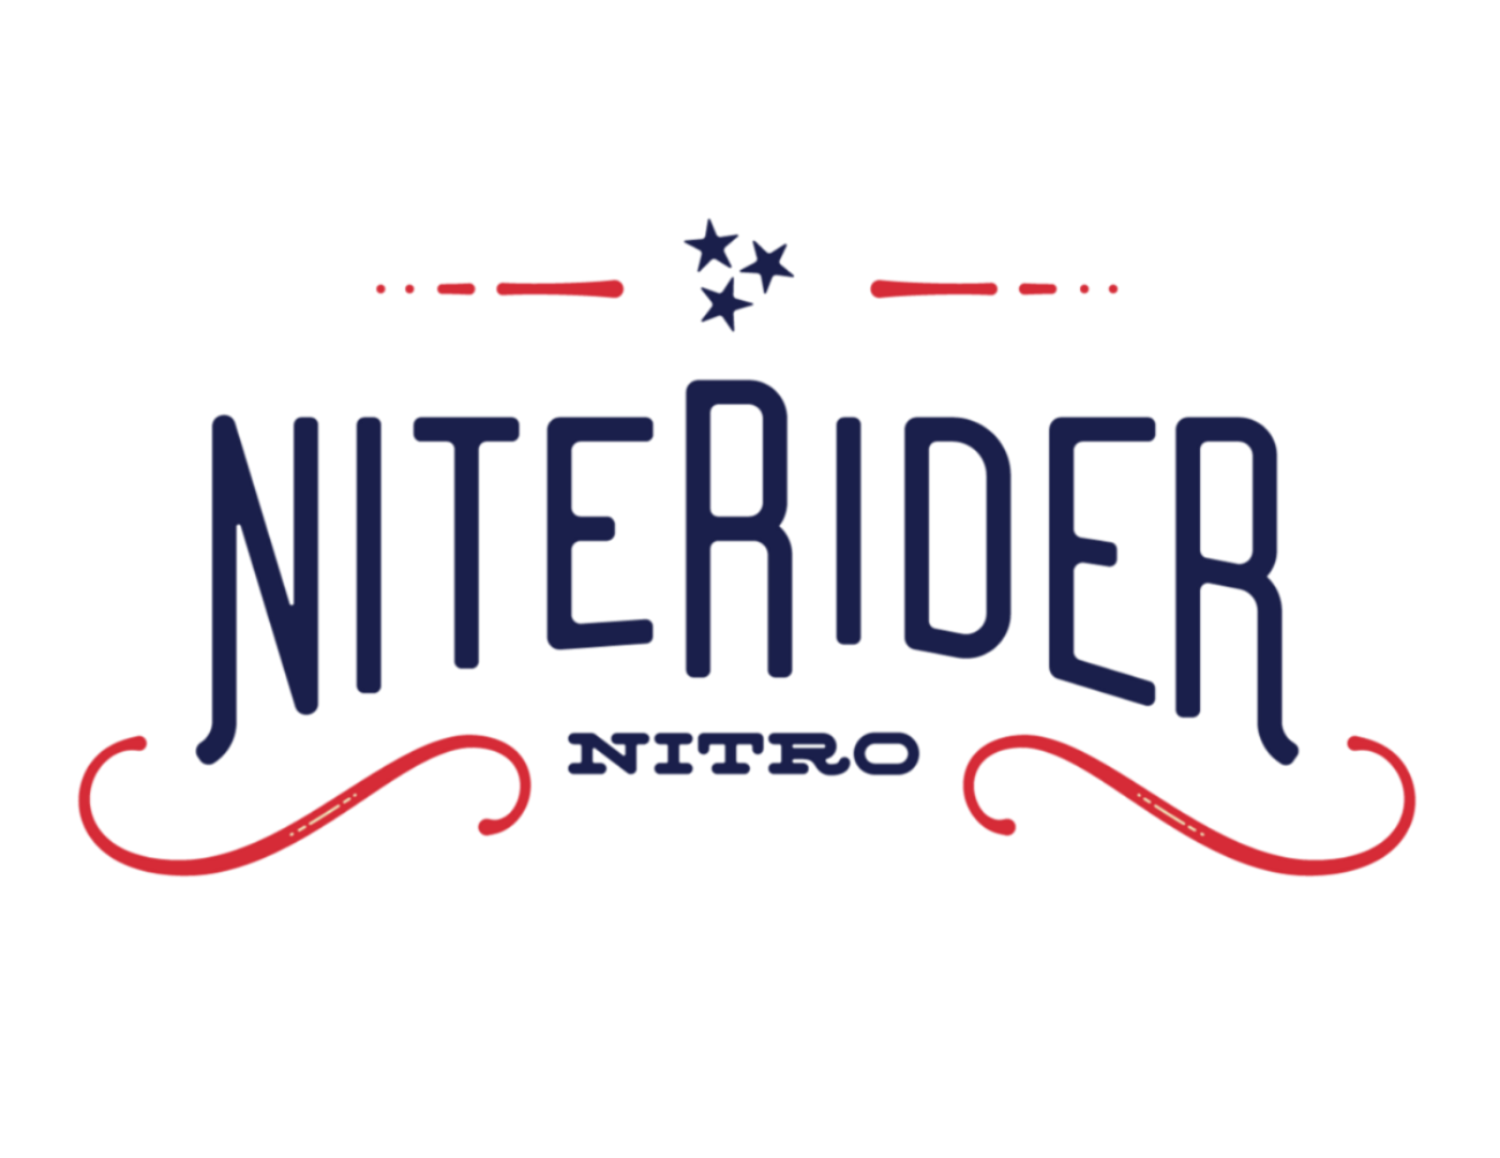 Niterider Nitro Cold Brewed Coffee